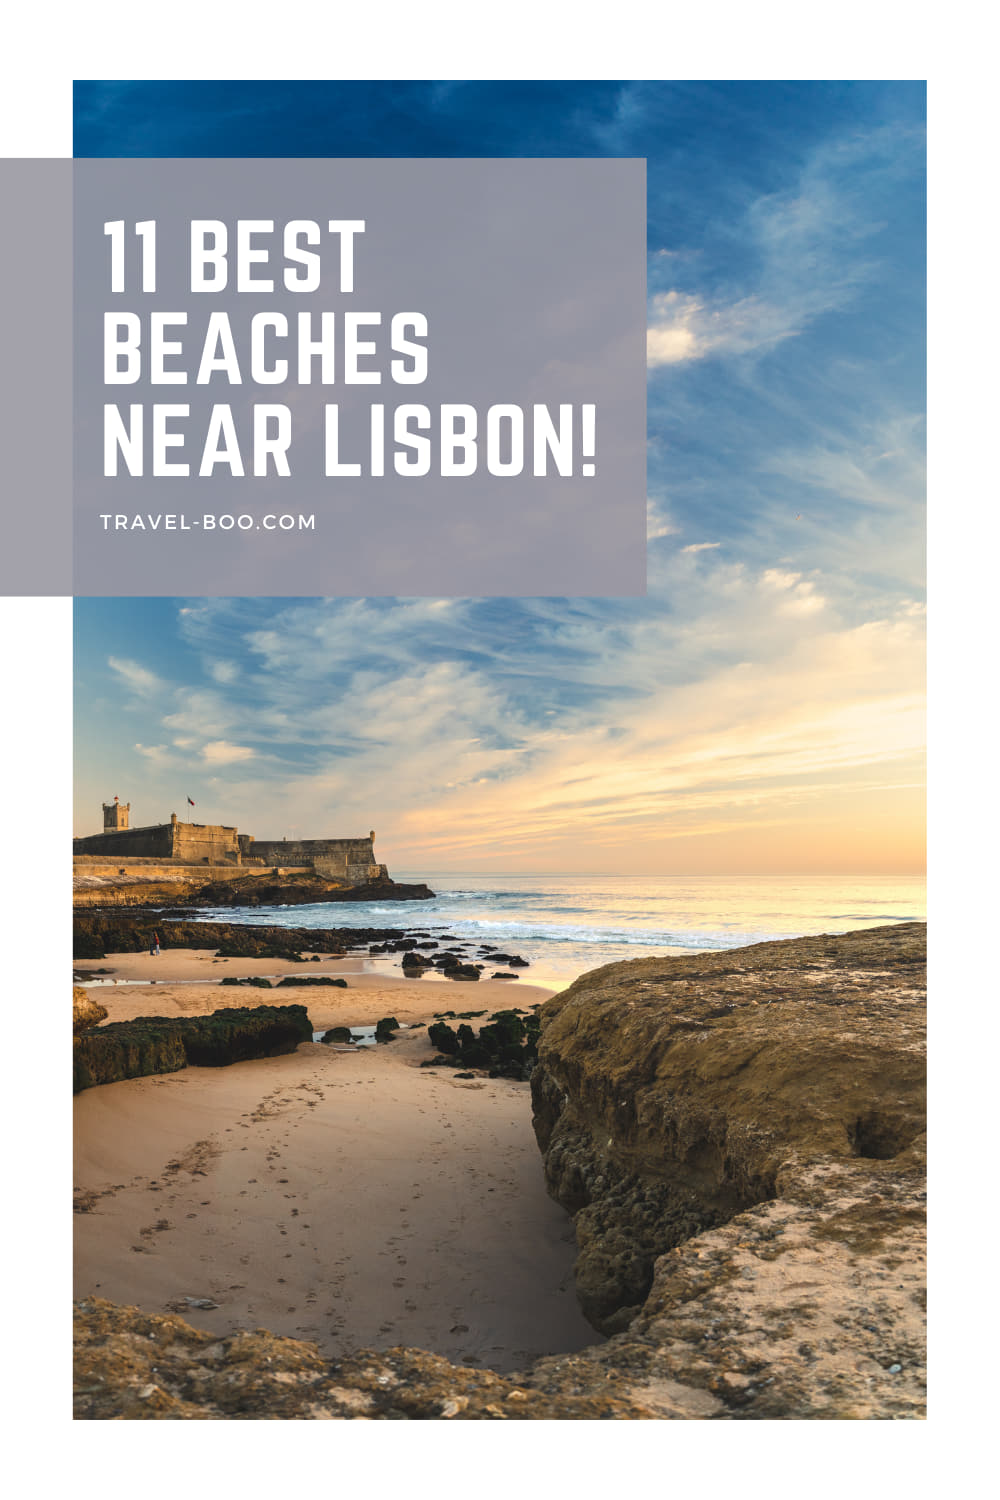 11 Beautiful Best Beaches in Lisbon & Surrounds Worth Exploring! Lisbon Beaches, Beaches in Lisbon, Lisbon Travel, Cascais Beaches, Beaches in Cascais, Cascais Travel, Lisbon Travel Itinerary